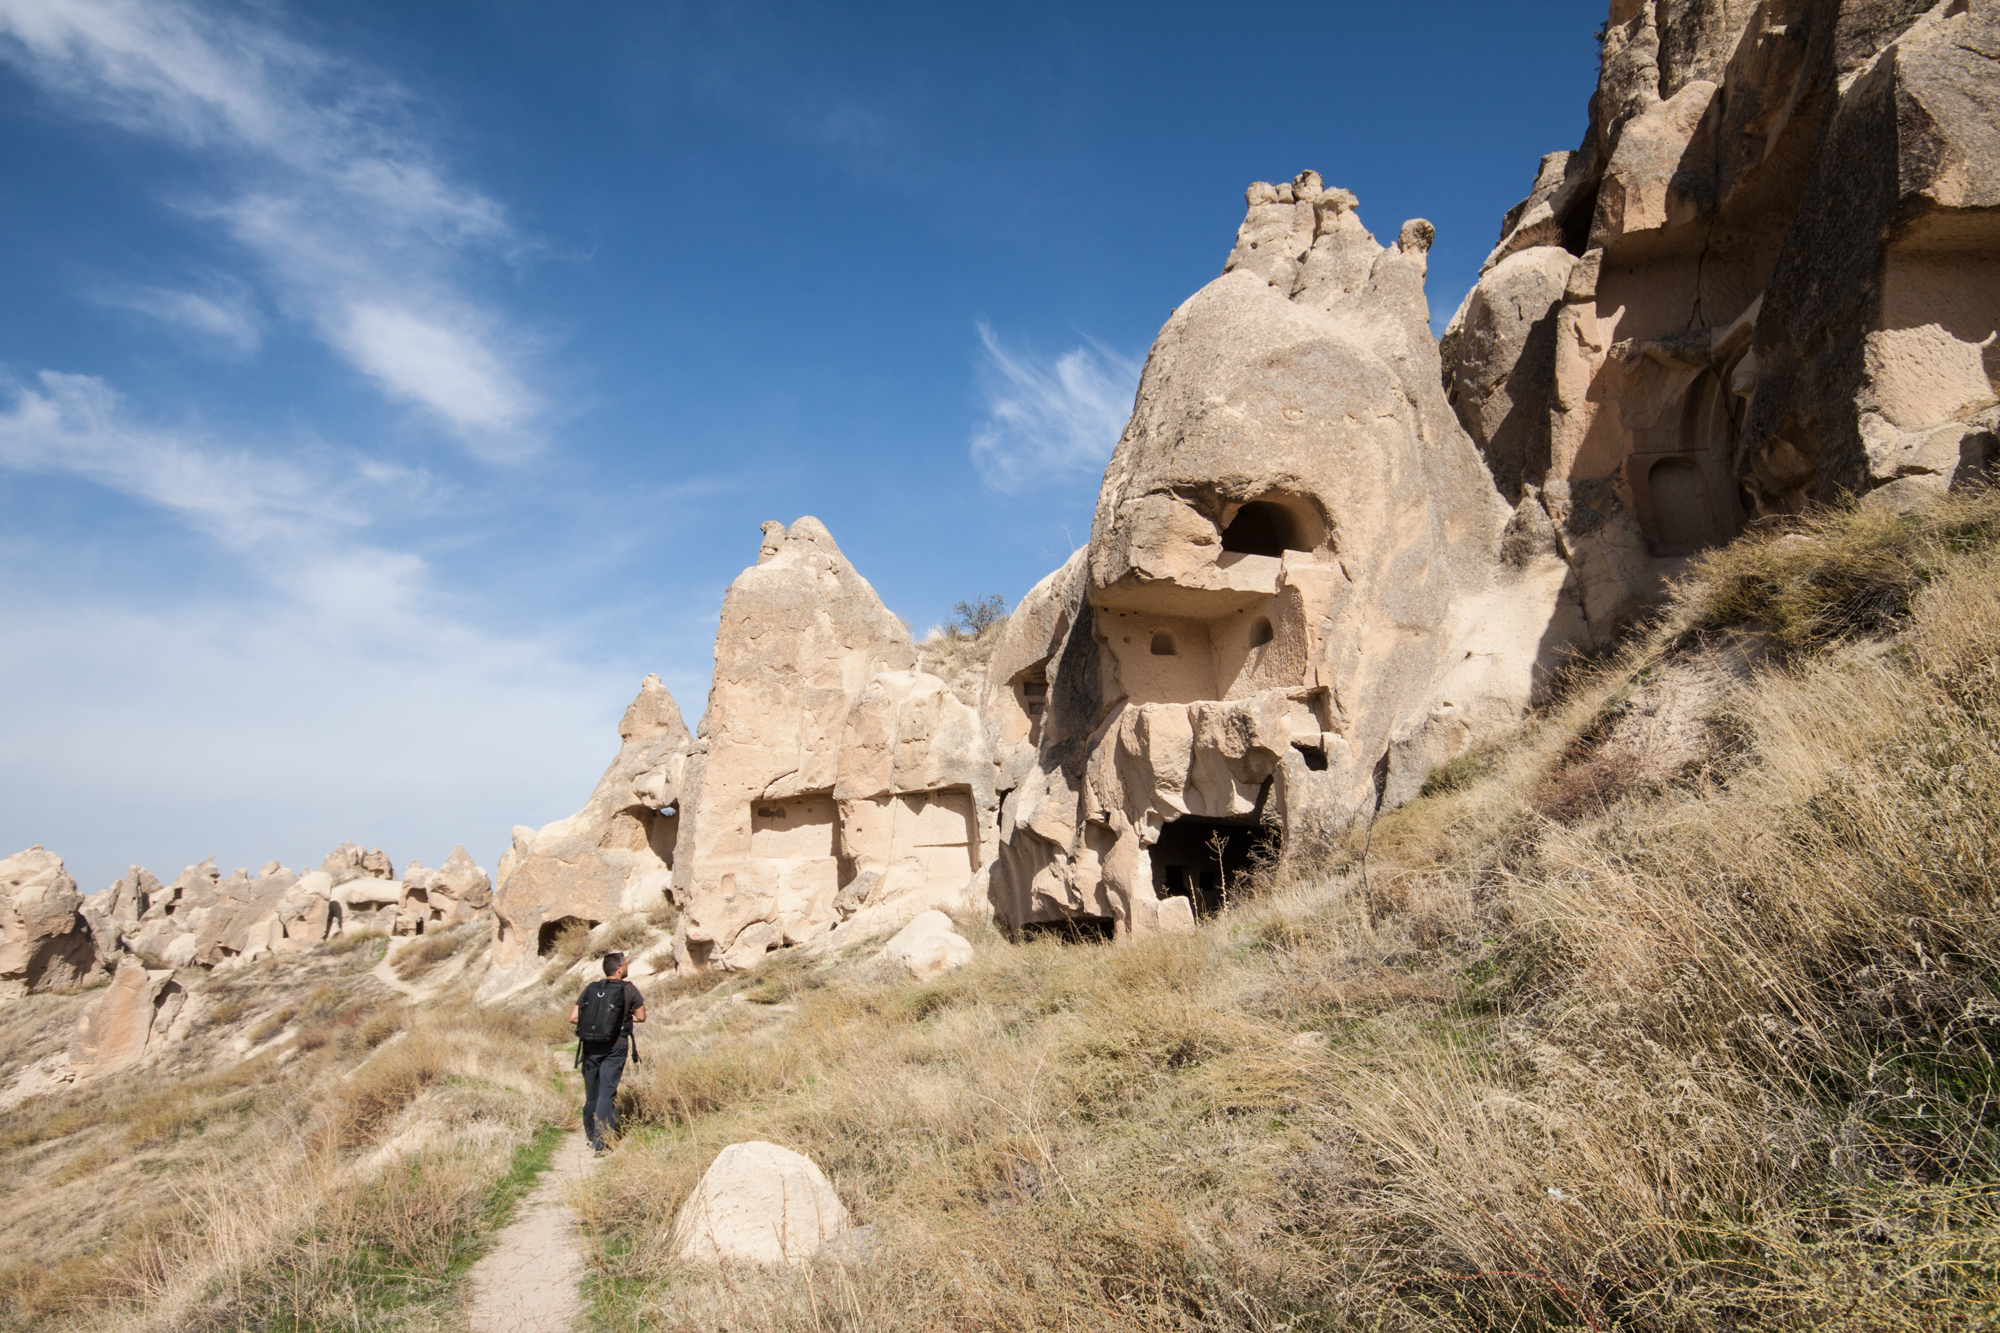 Exploring the stone chimneys in Göreme - again, we had the place to ourselves to explore the homes dug out of the rock